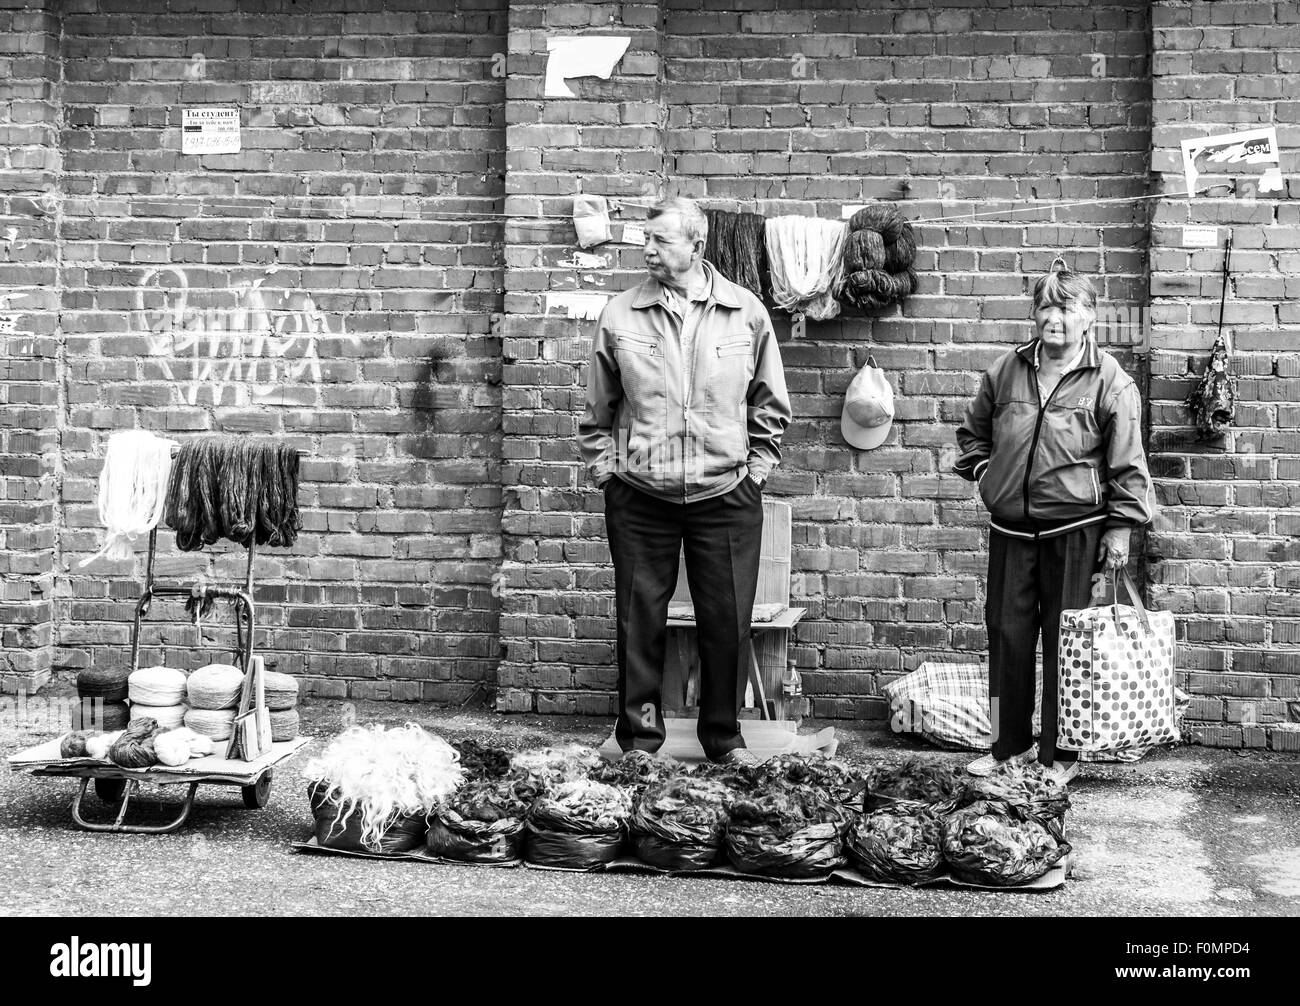 Elderly couple sell raw wool at a local market in Sterlitamak Russia - Stock Image